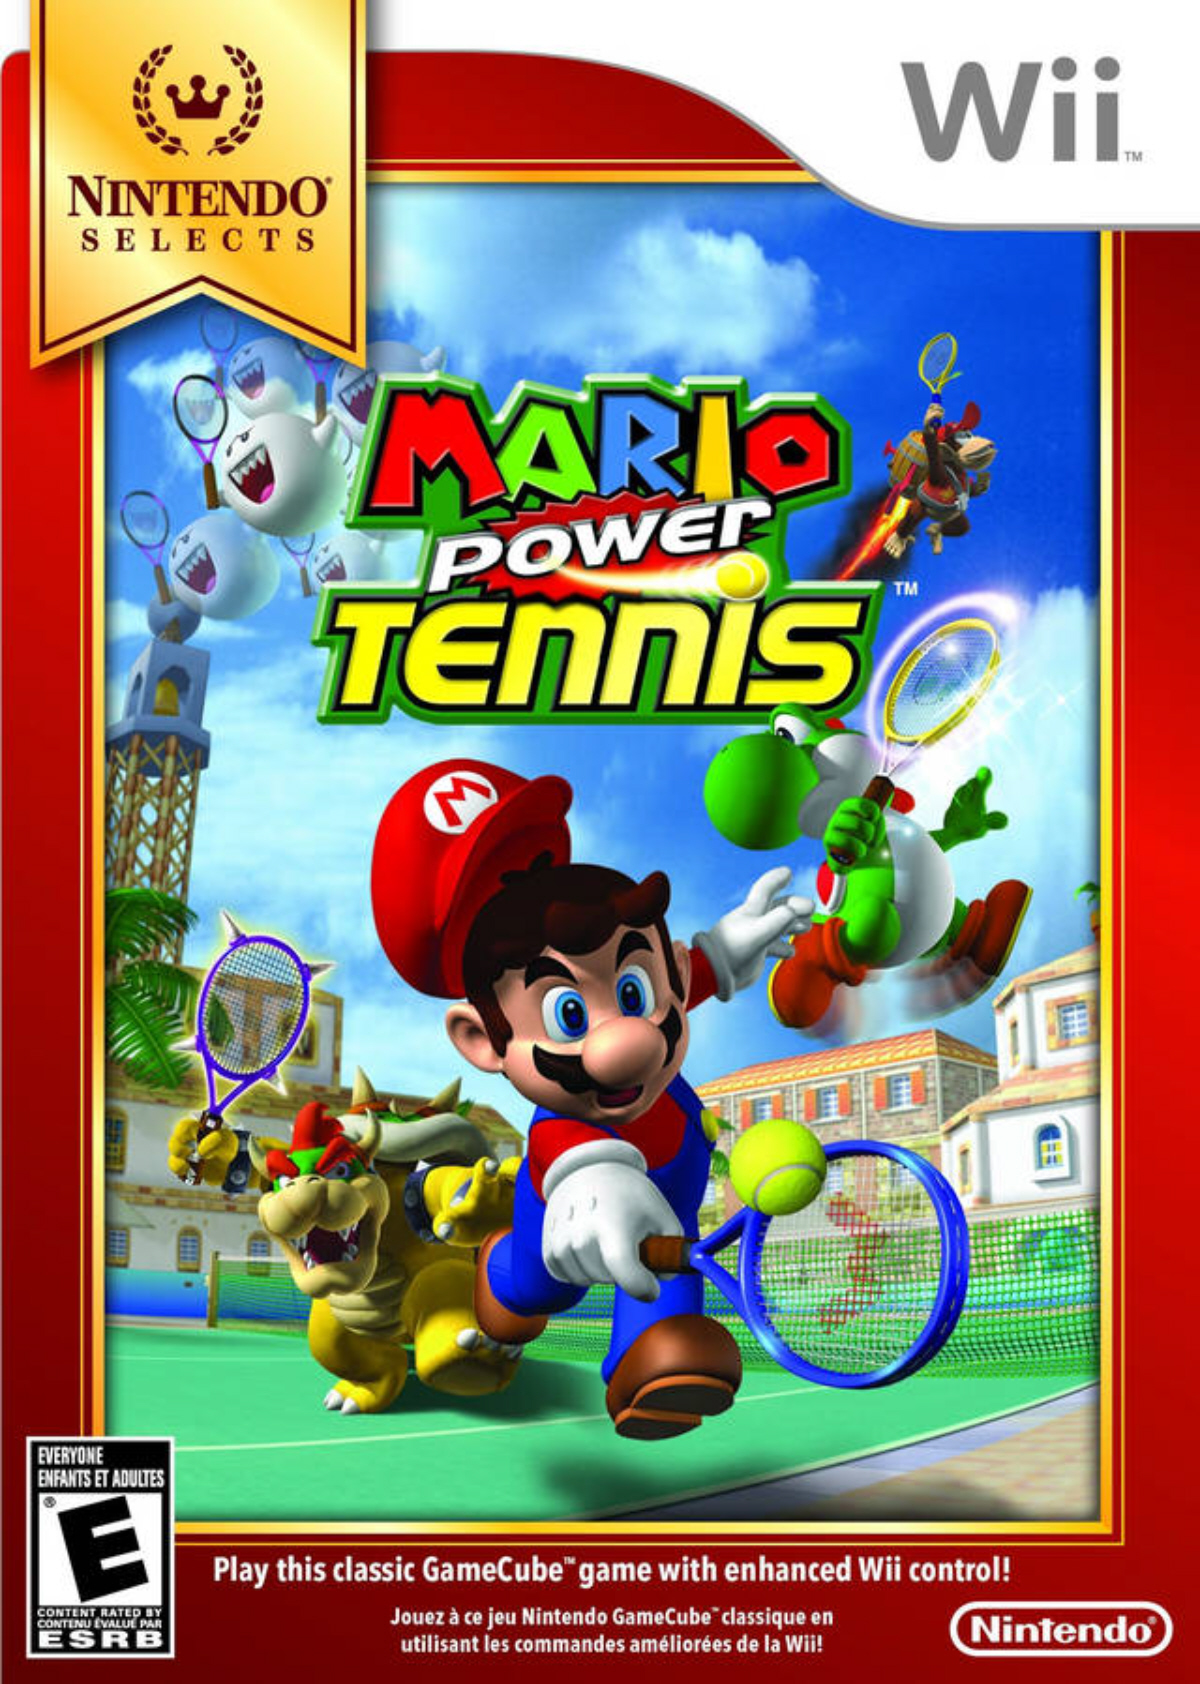 Mario Wii U Games : Mario power tennis wii watch us play games